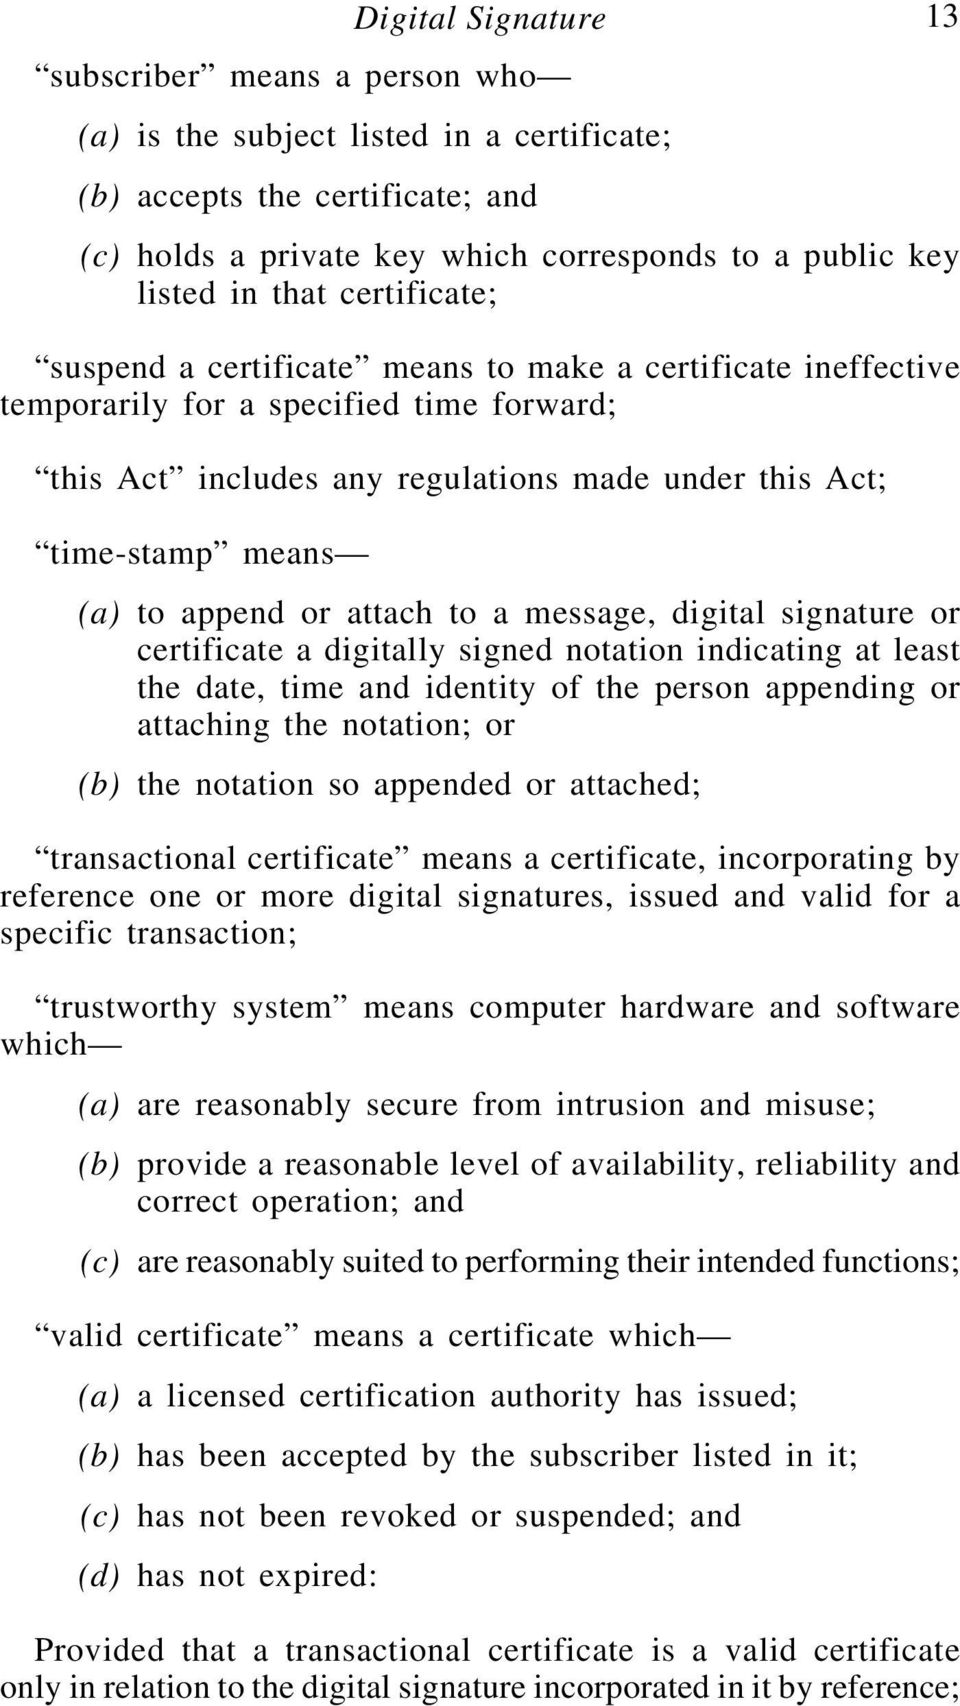 to append or attach to a message, digital signature or certificate a digitally signed notation indicating at least the date, time and identity of the person appending or attaching the notation; or